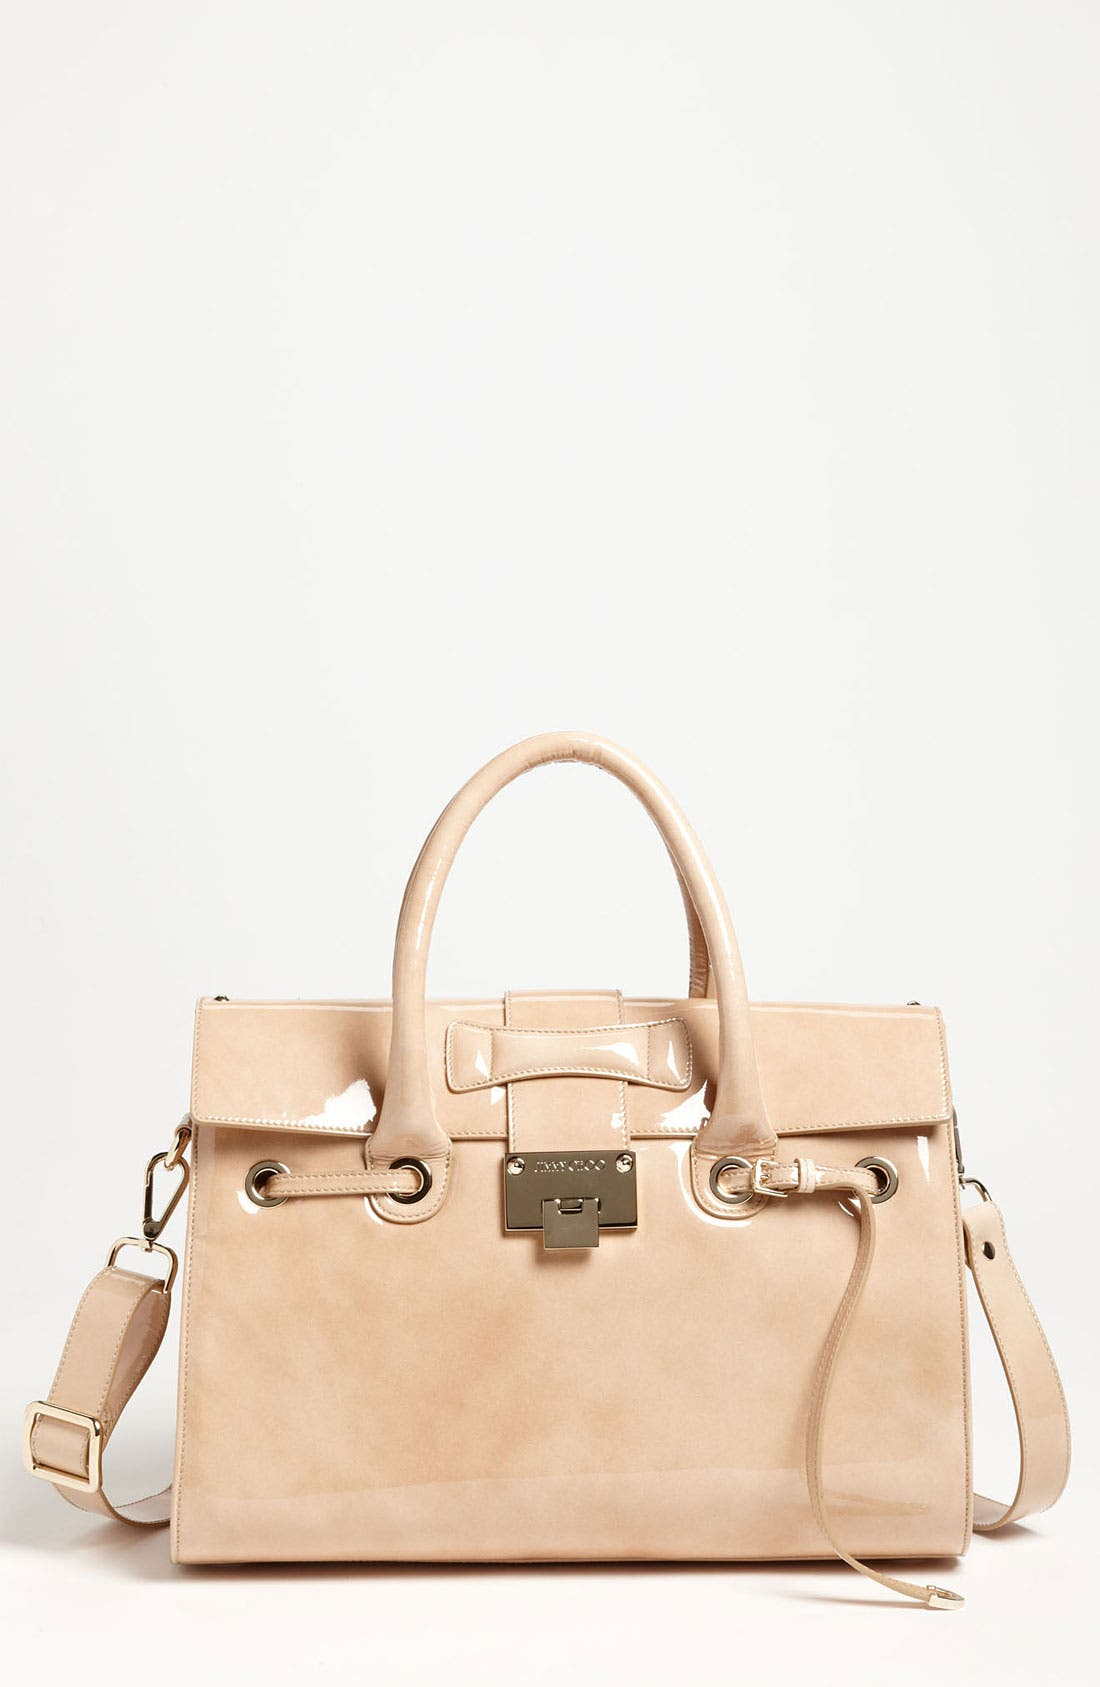 Main Image - Jimmy Choo 'Rosalie' Patent Leather Satchel